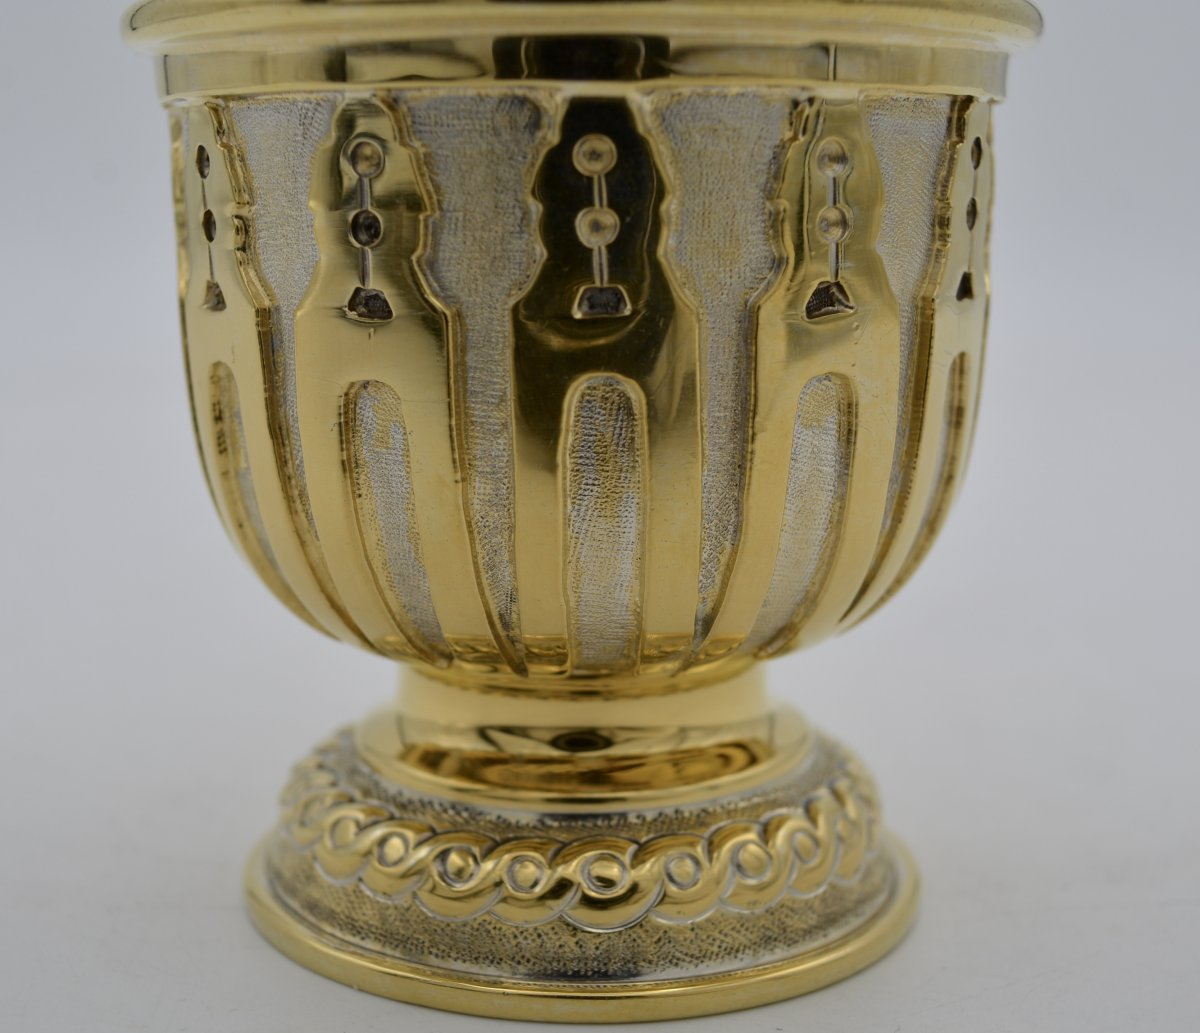 Timbal In Gilded Silver, Mexico  XX Century Tane Orfevres -photo-5